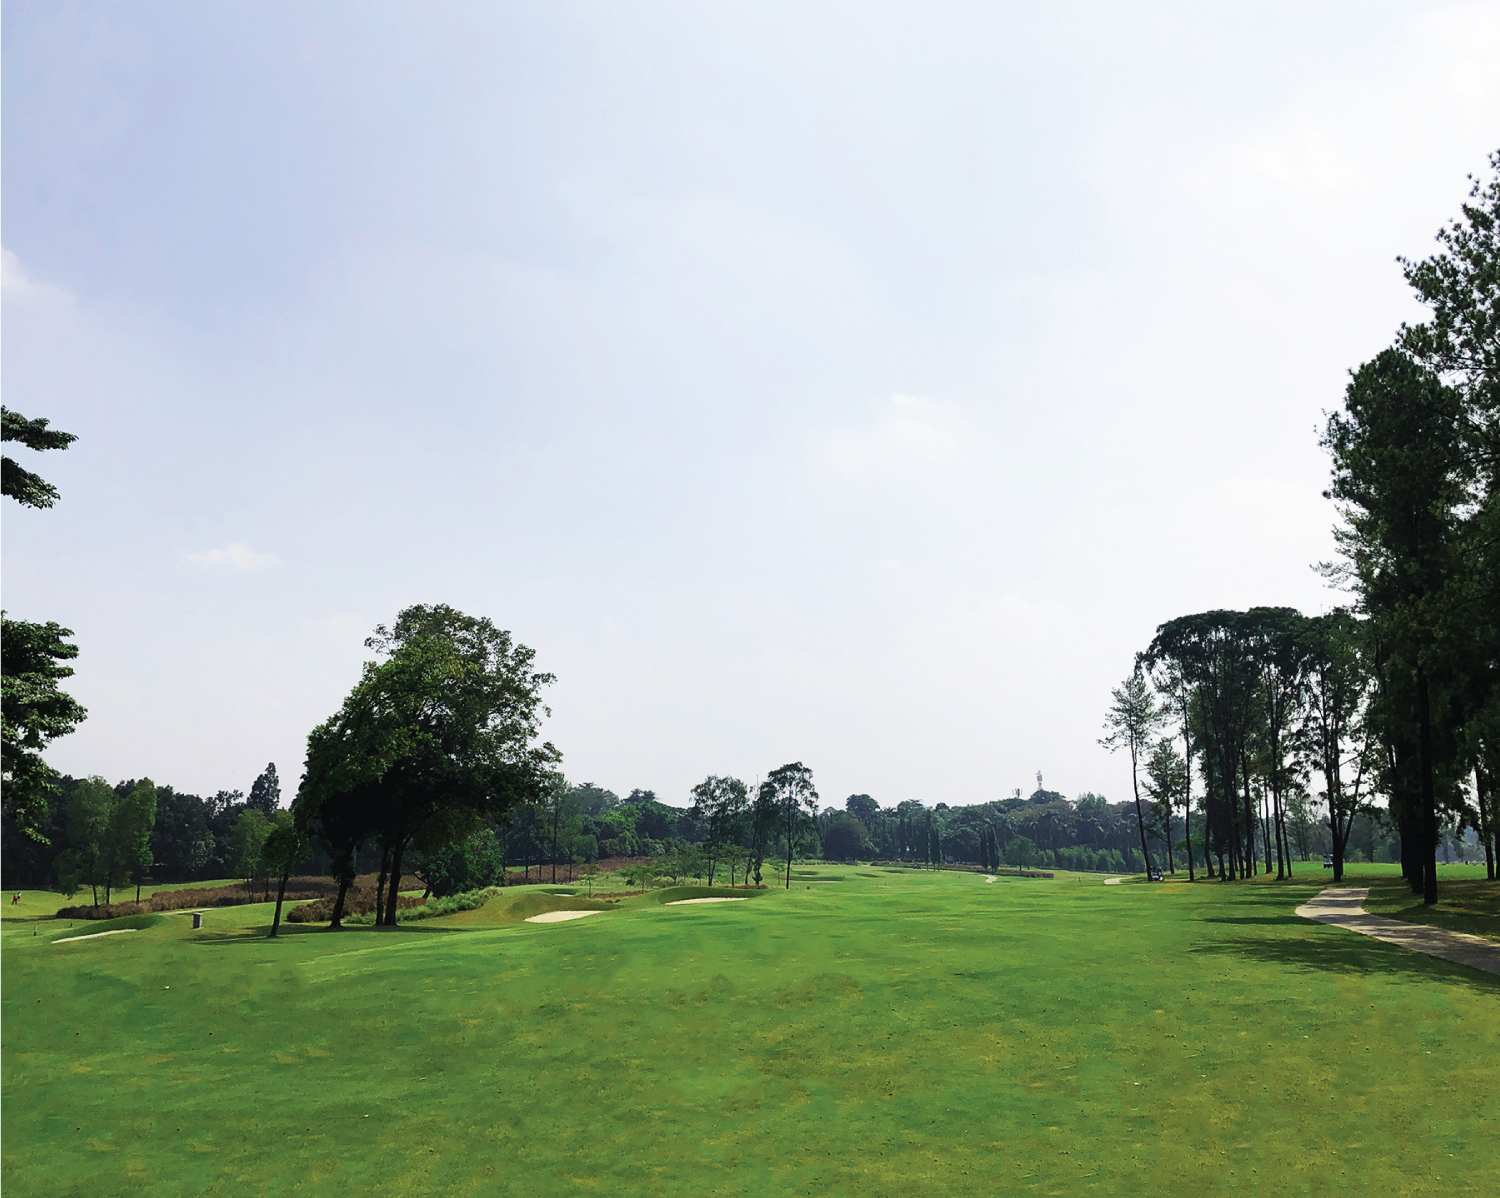 GOLF-COURSE-1-BLUE-COURSE